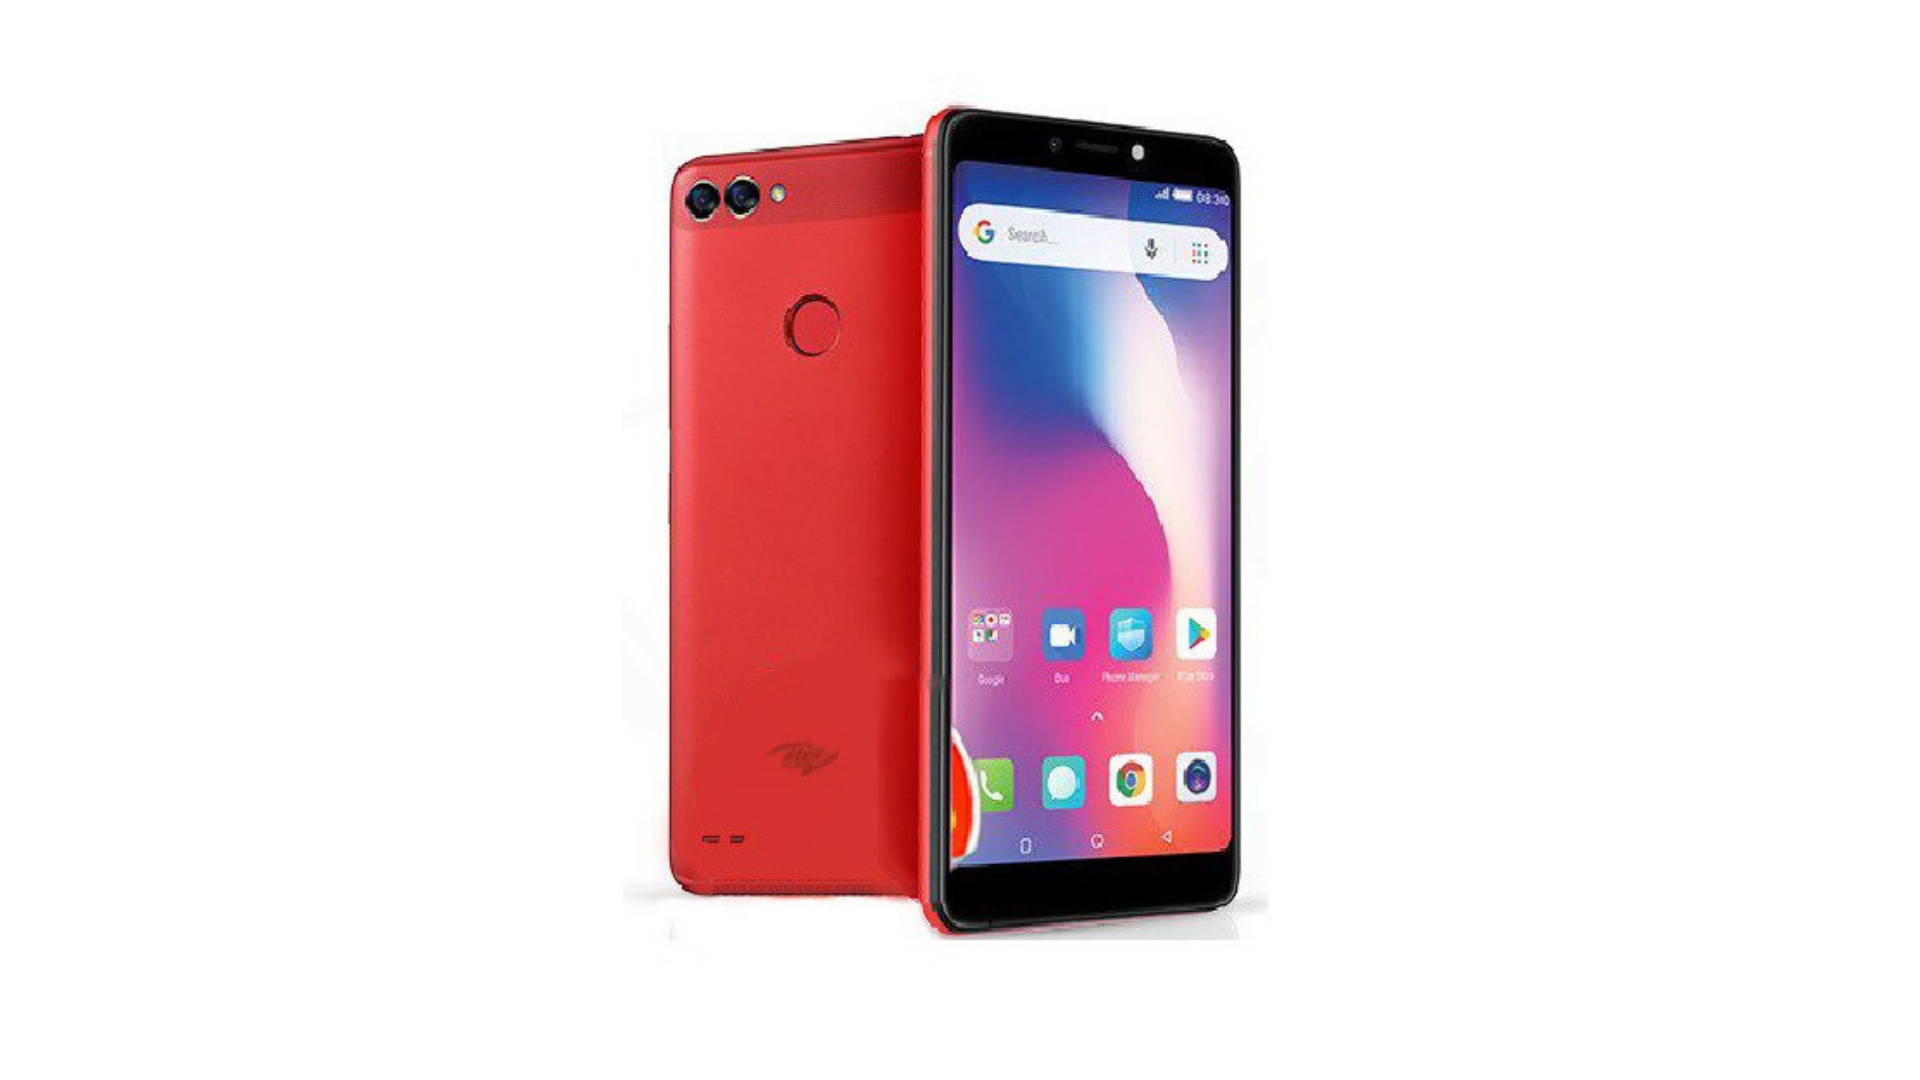 The itel S13 is a budget friendly selfie-focused Android Go smartphone